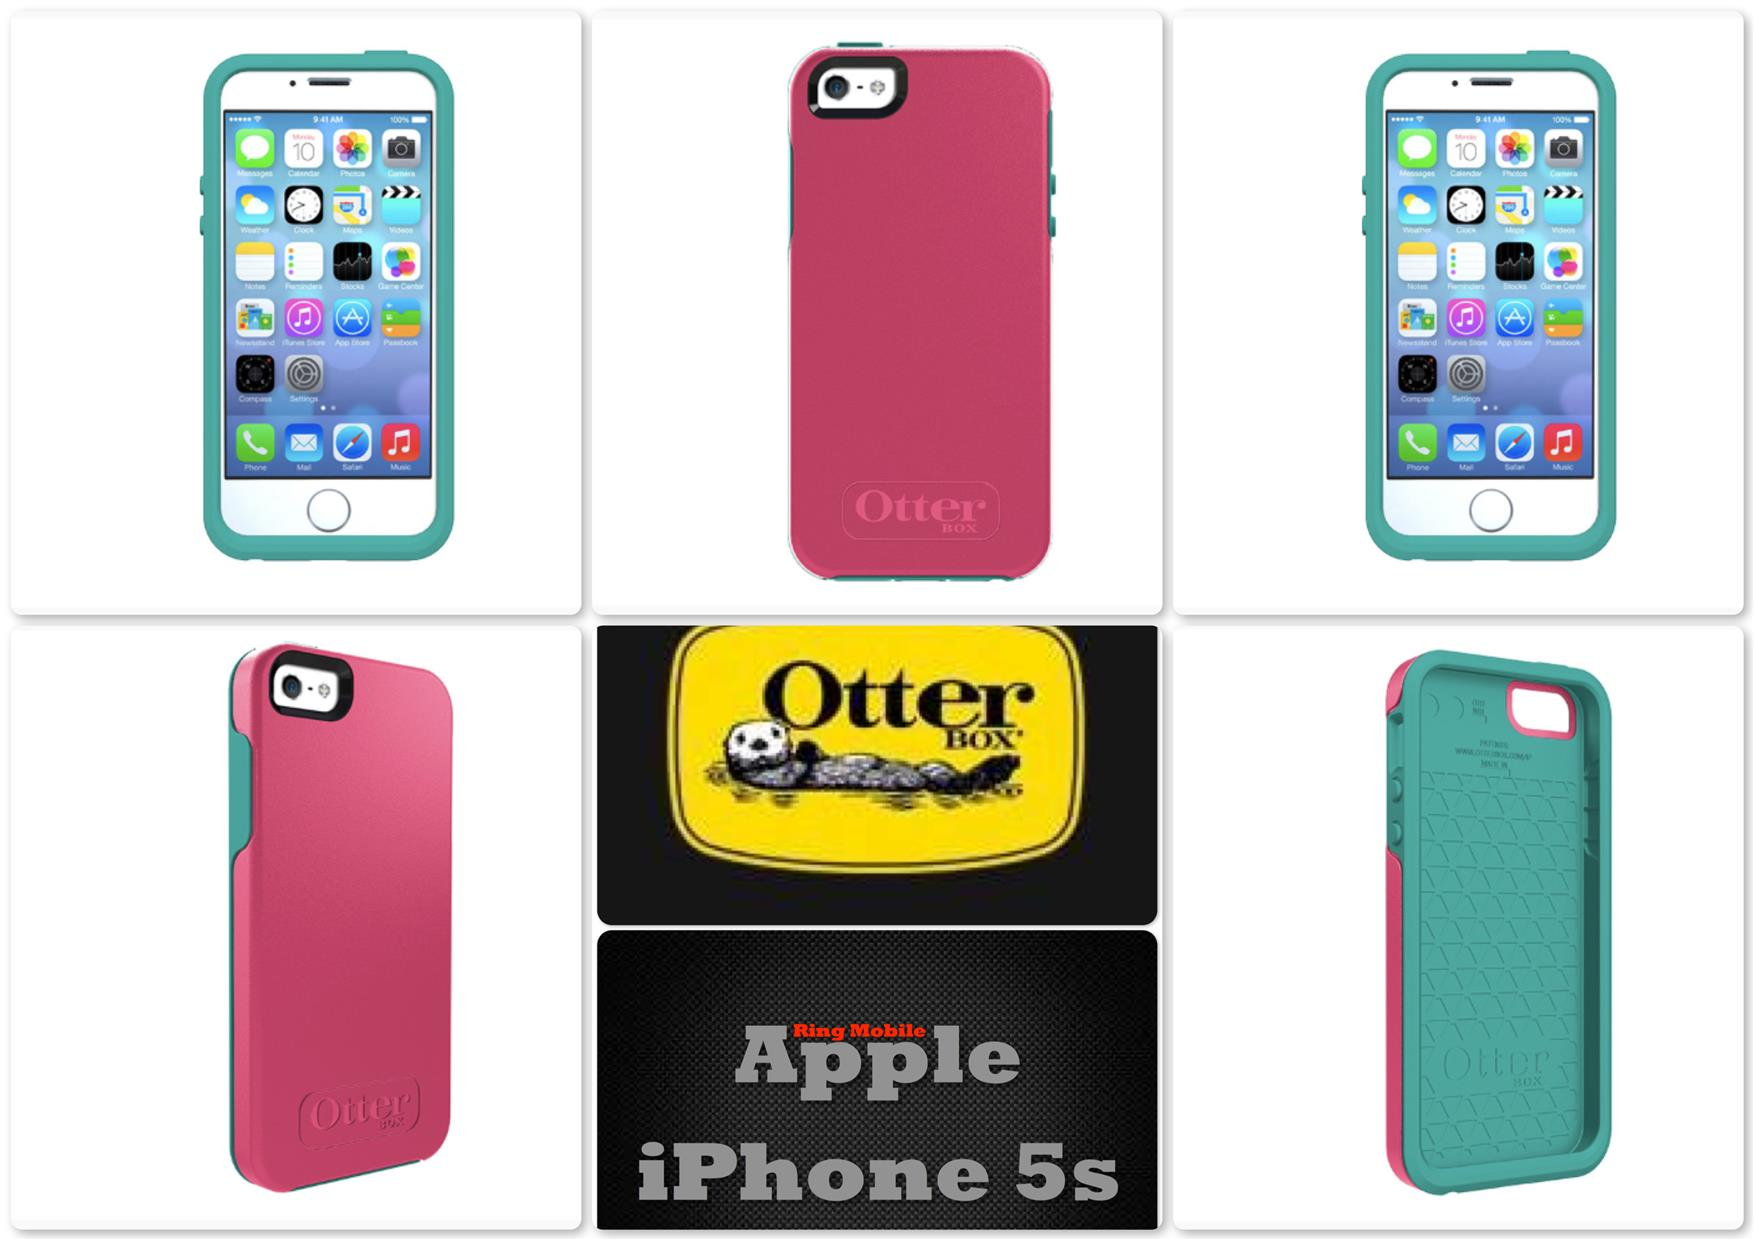 Bdotcom = Apple iPhone 5 5s Otterbox Symmetry Series @ Teal Rose